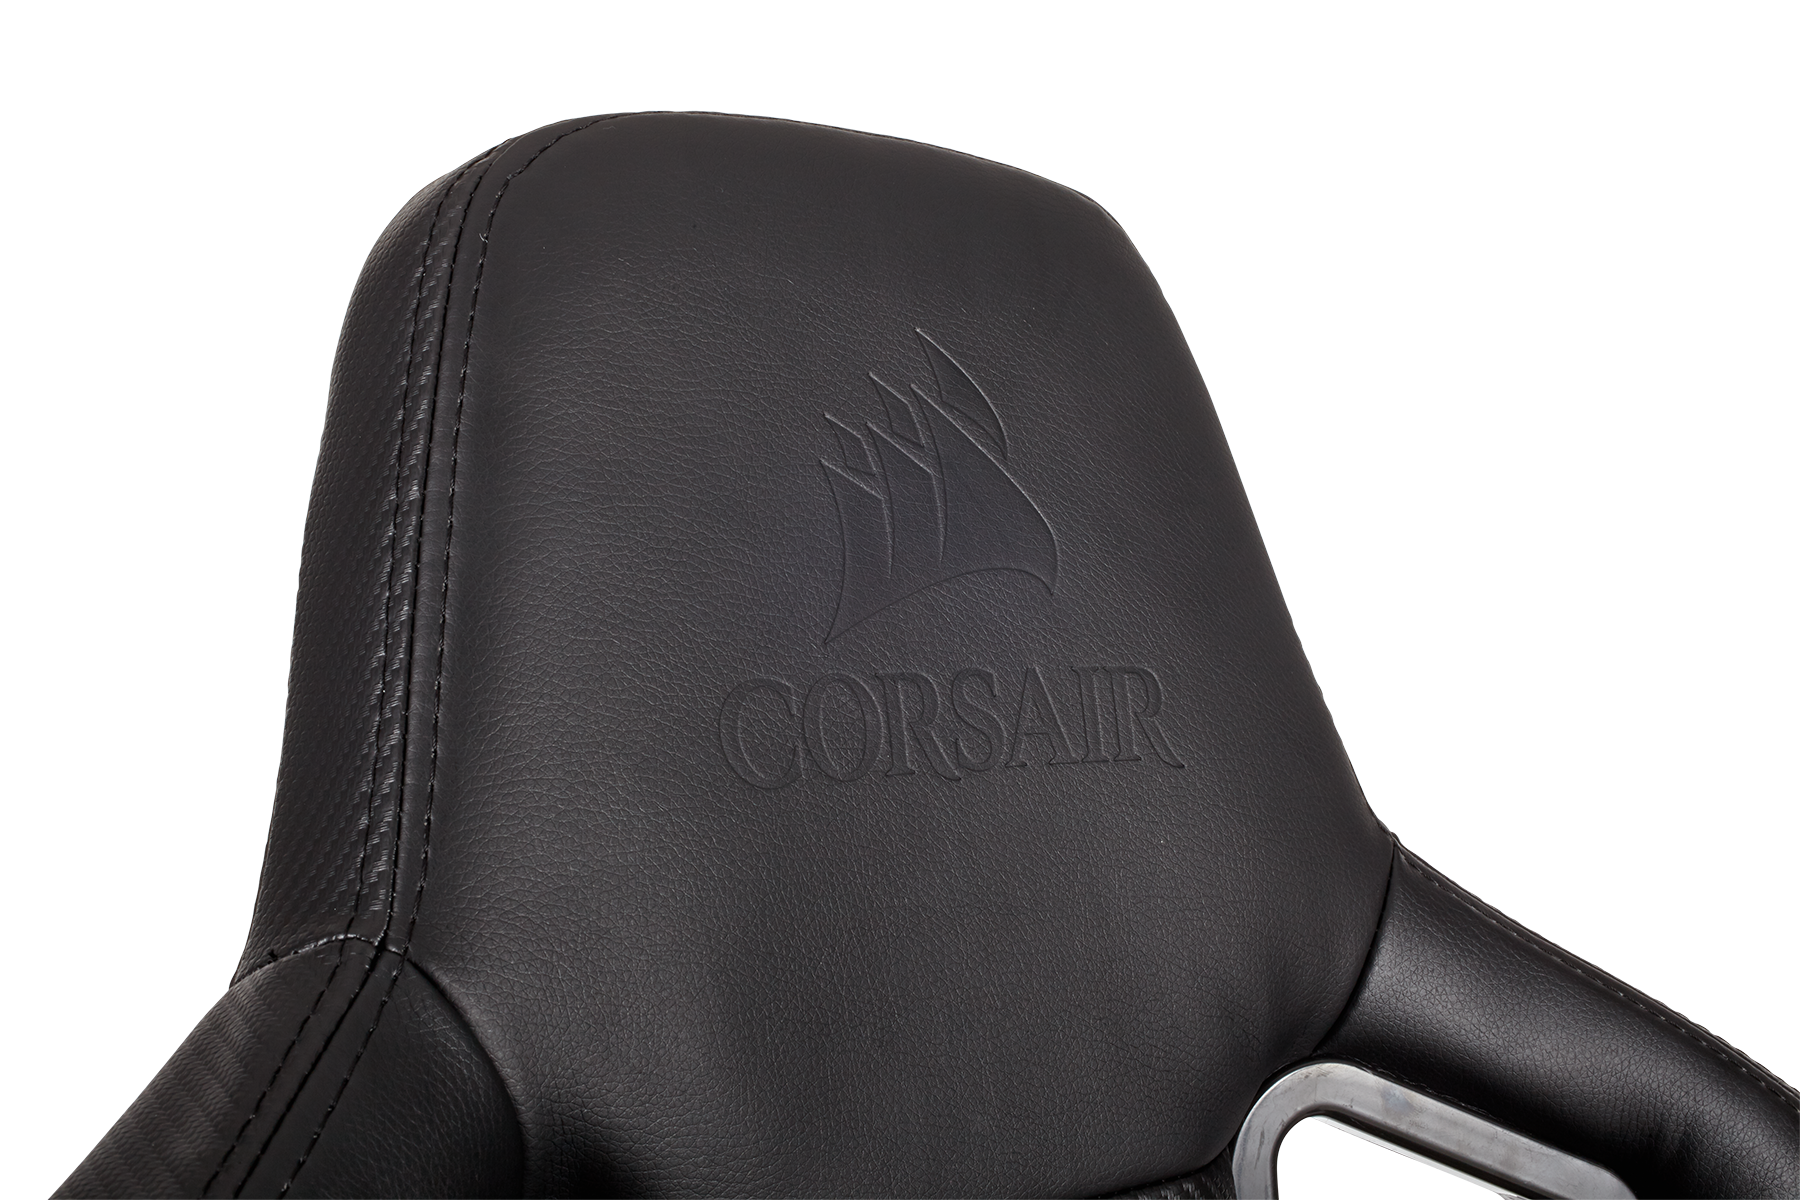 Corsair is ting into the gaming chair market The Verge